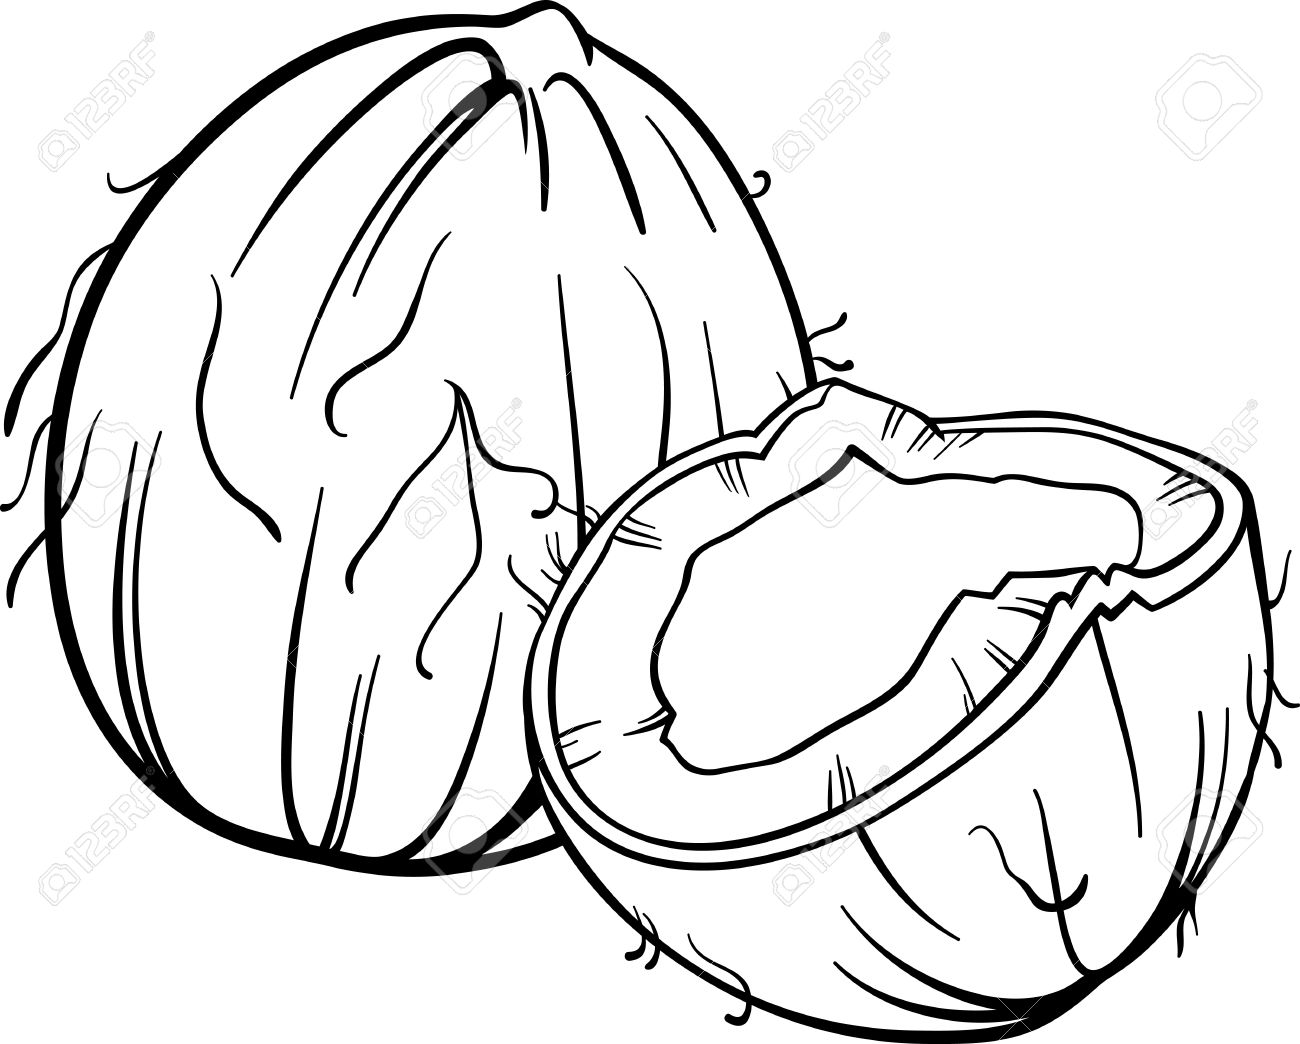 Black and White Cartoon Illustration of Coconut or Cocoanut Food...